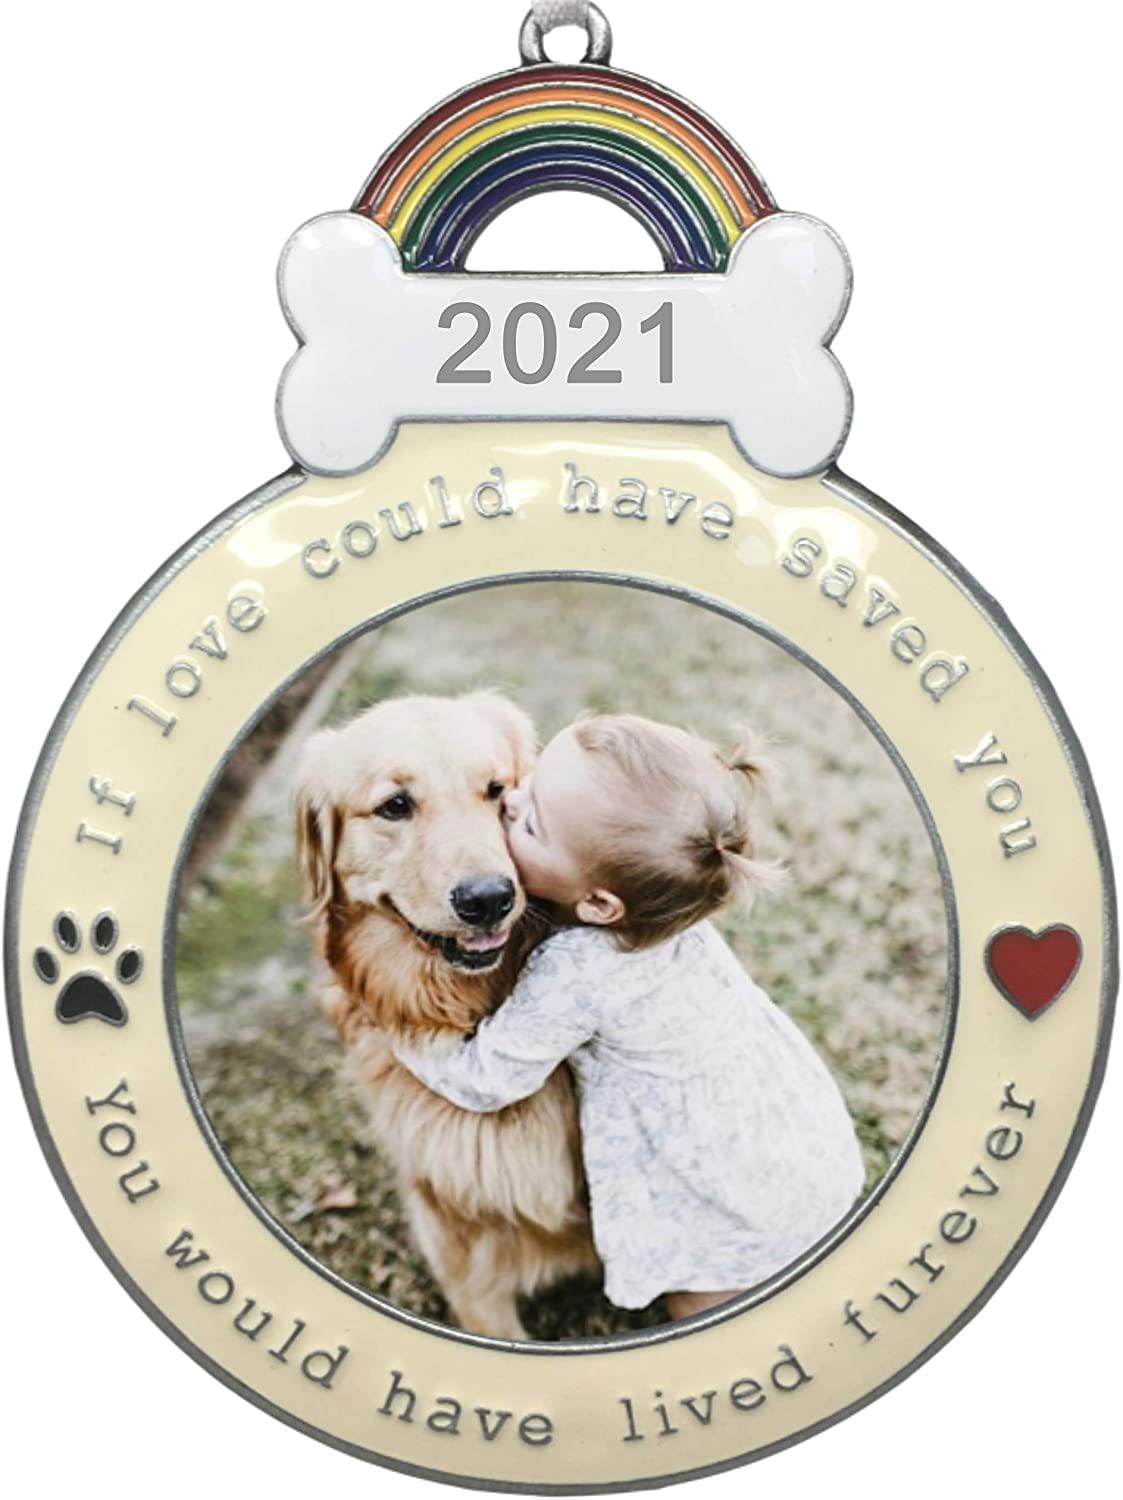 Banberry Designs Dog Memorial Ornament 2021 Dated Christmas Keepsake Picture Holder If Love Could Have Saved You Paw Prints And Heart Design Loss Of Dog Gifts Kitchen Dining